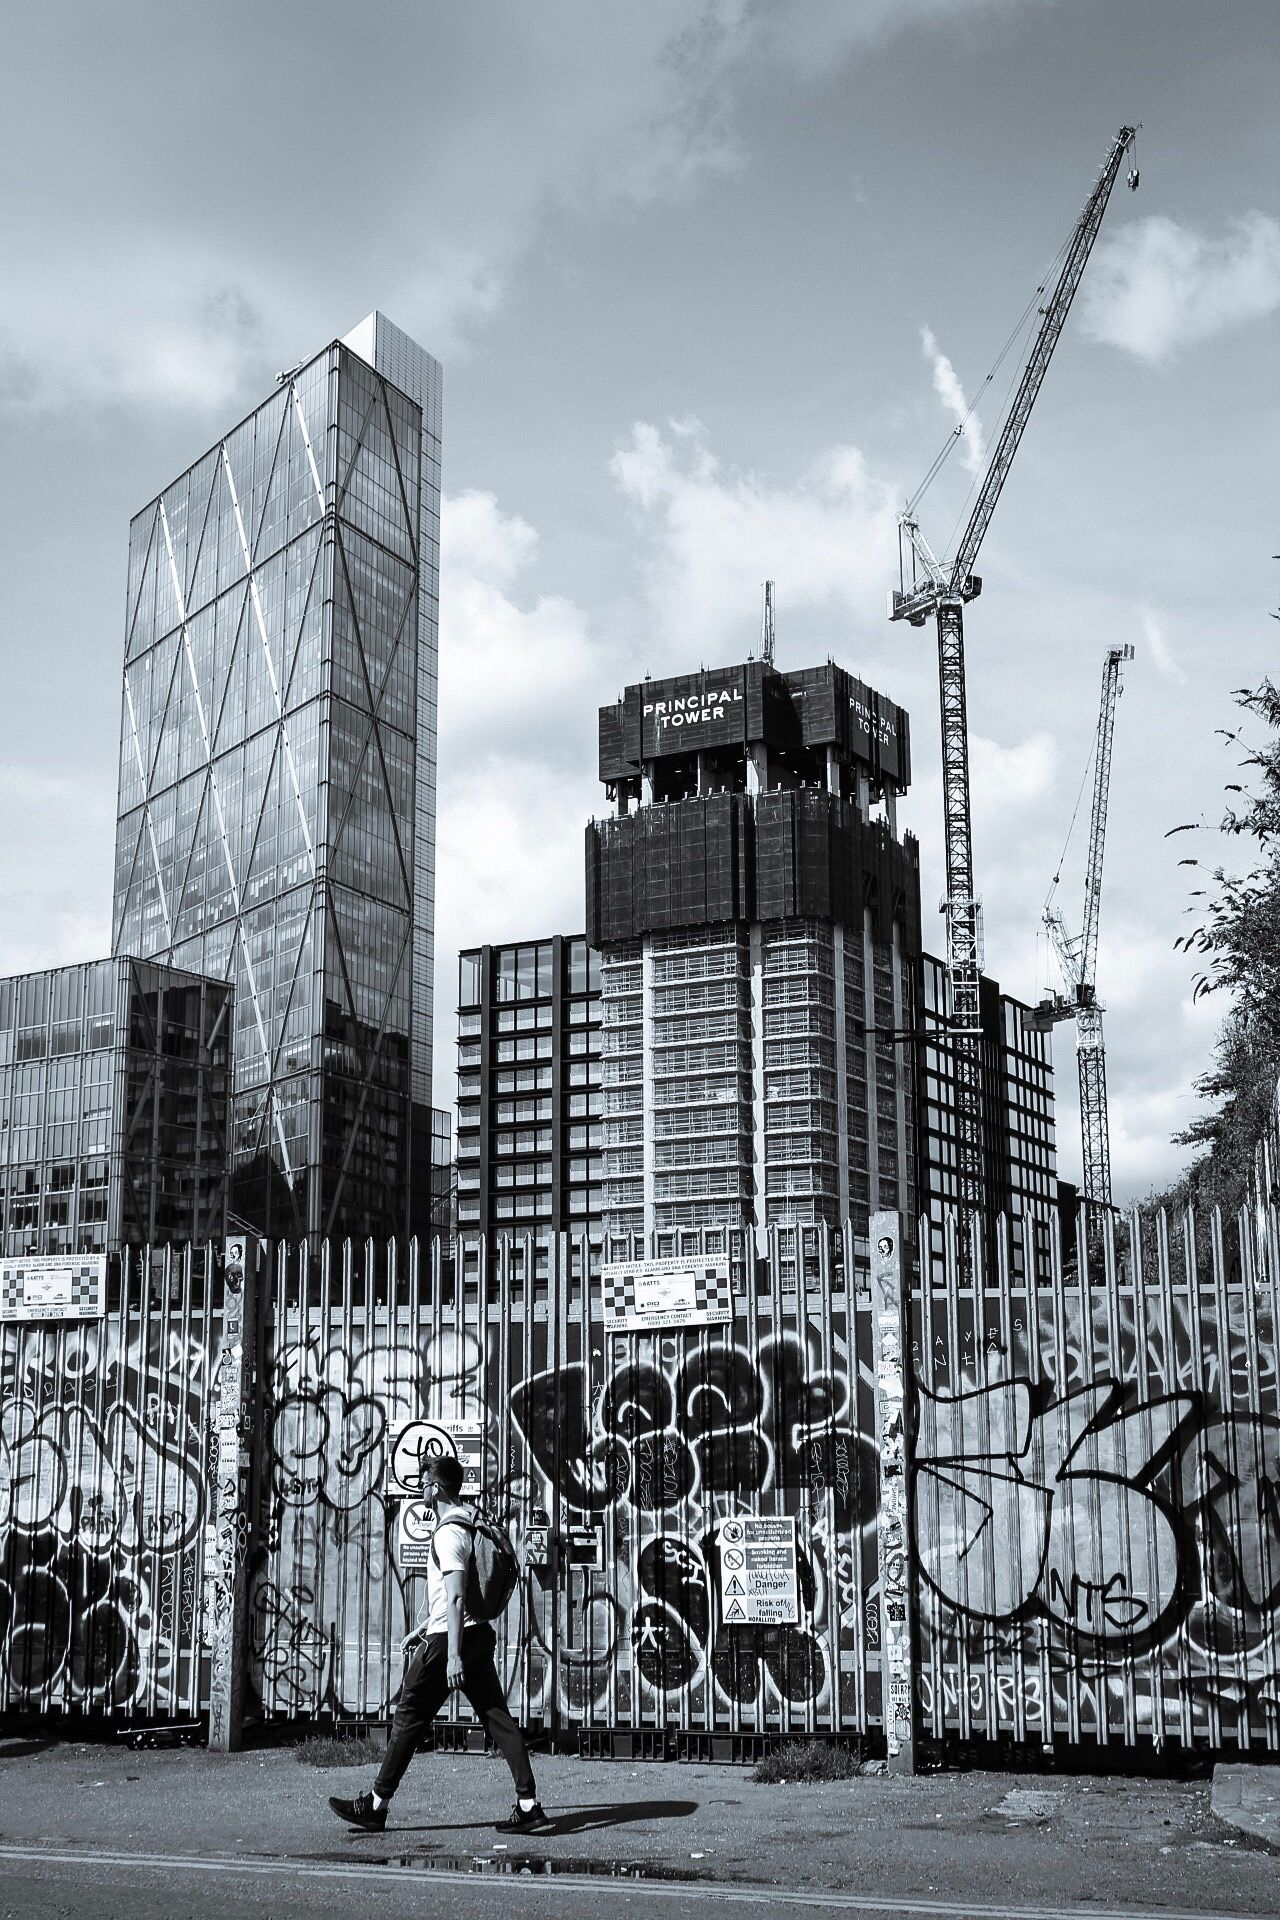 Architecture Built Structure Building Exterior Real People Cloud - Sky Sky City Day Outdoors Skyscraper Men Lifestyles Modern One Person Adult People Monochrome Blackandwhite Crane Construction London Railing Tree Graffiti